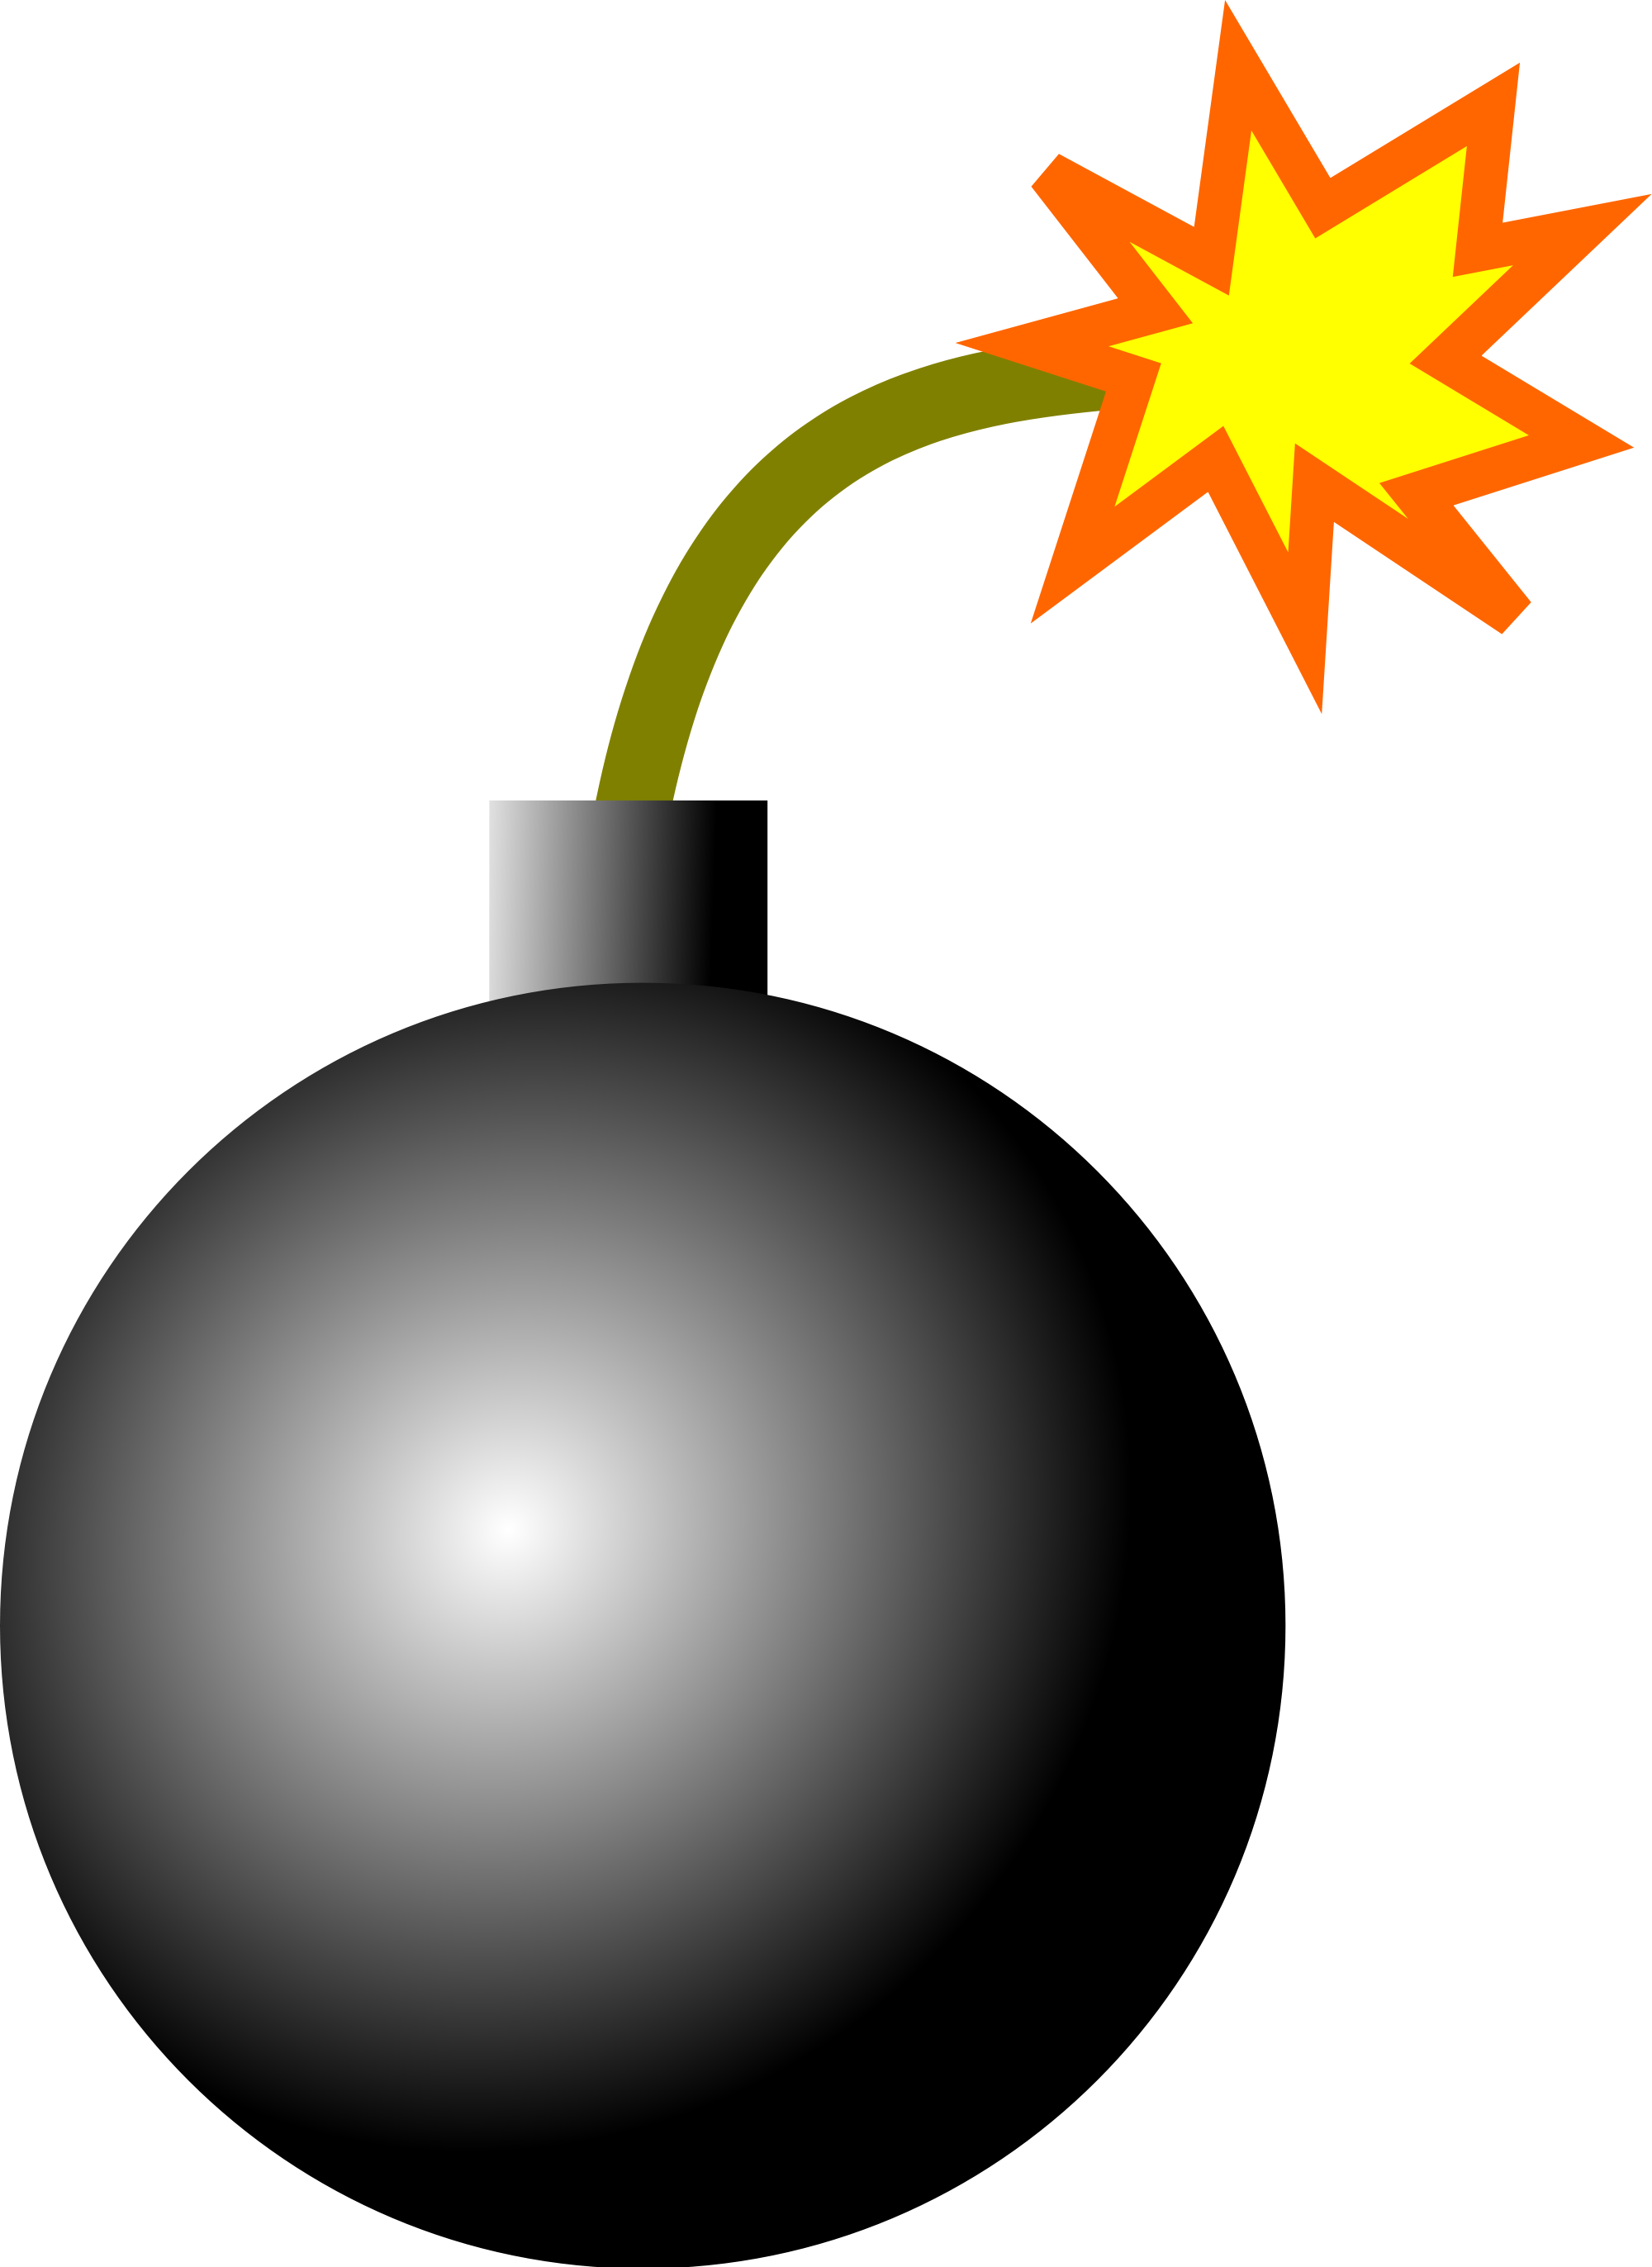 Bomb Explode In Png image #46605